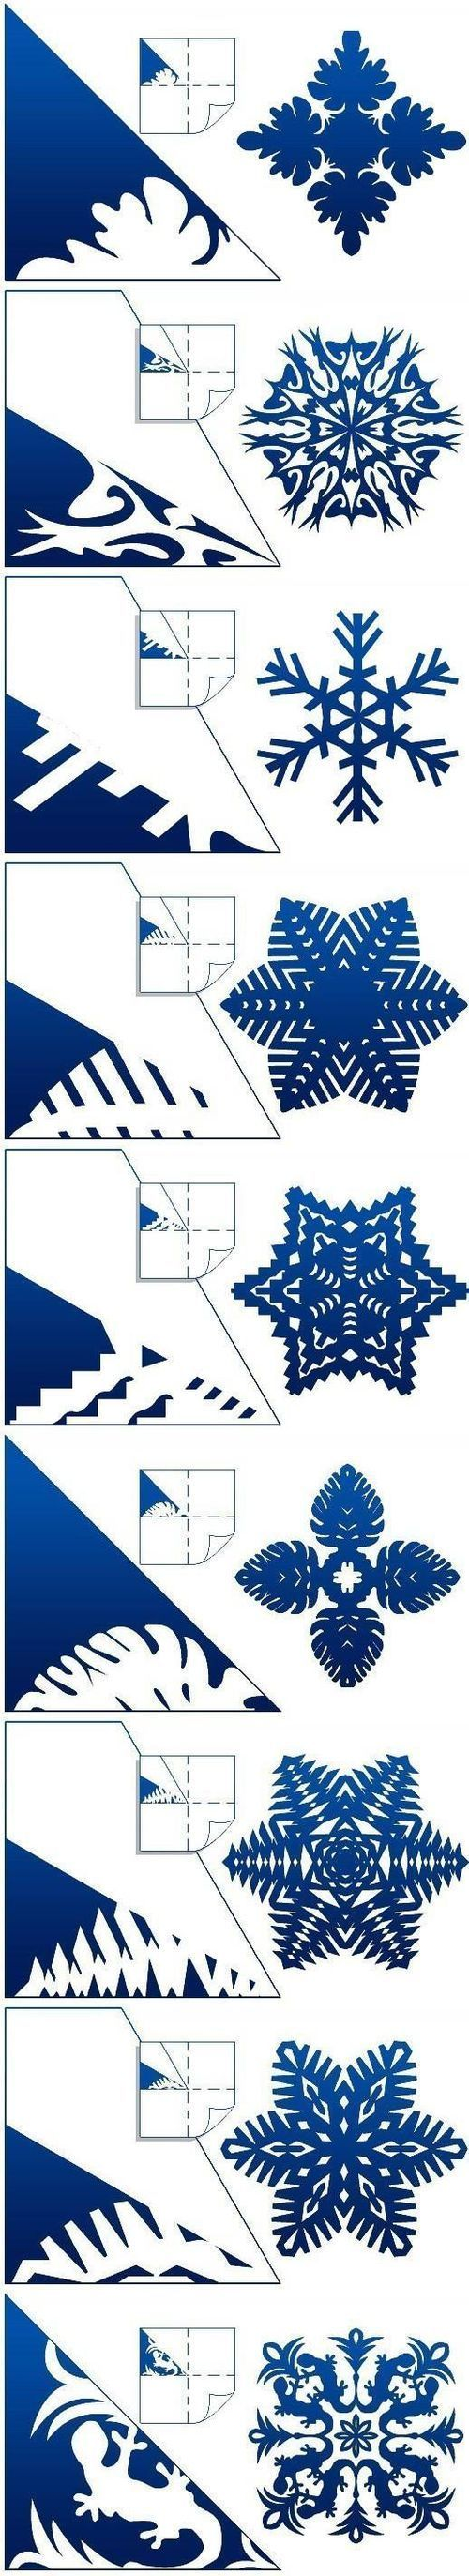 DIY Schemes of Paper Snowflakes DIY Projects / UsefulDIY.com